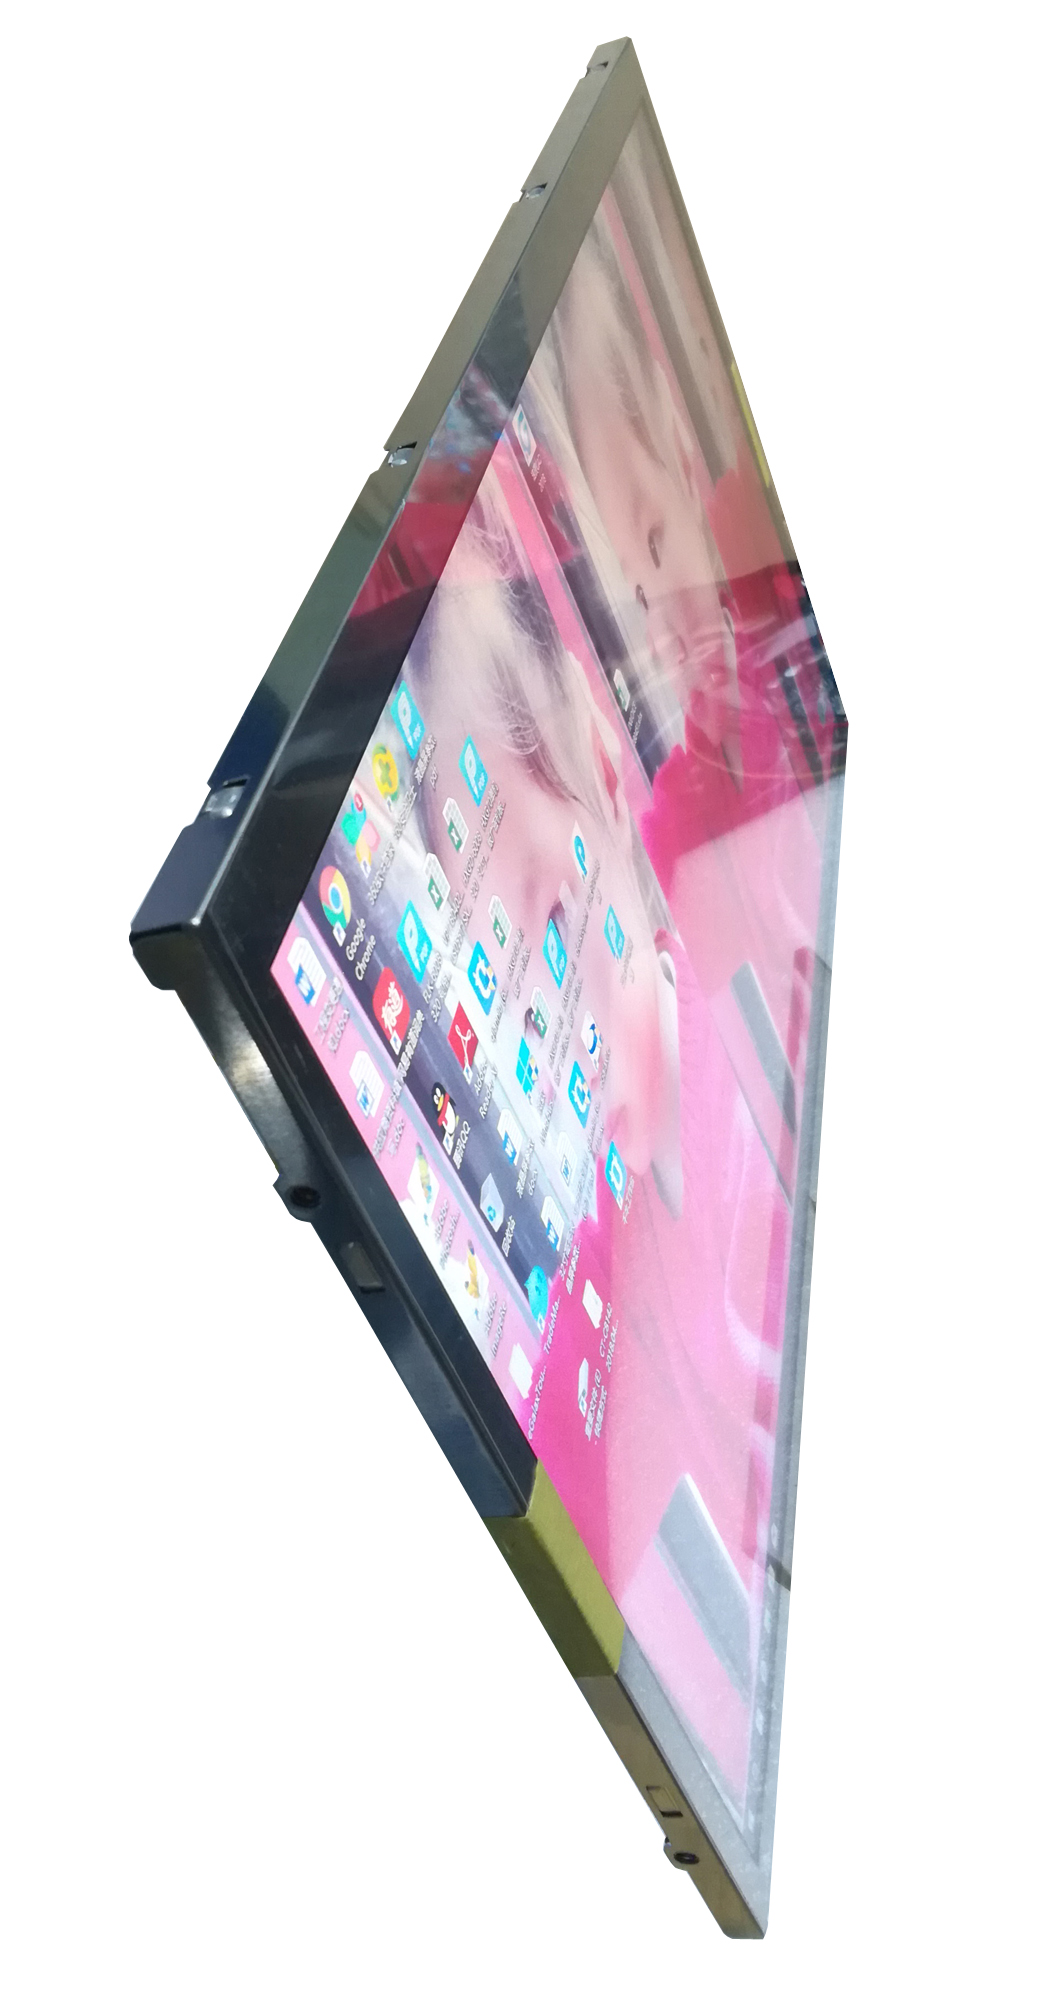 3840*2160 4K 5.5 inch LCD HDMI display with capacitive touch screen and HDMI to DSI MIPI BOARD